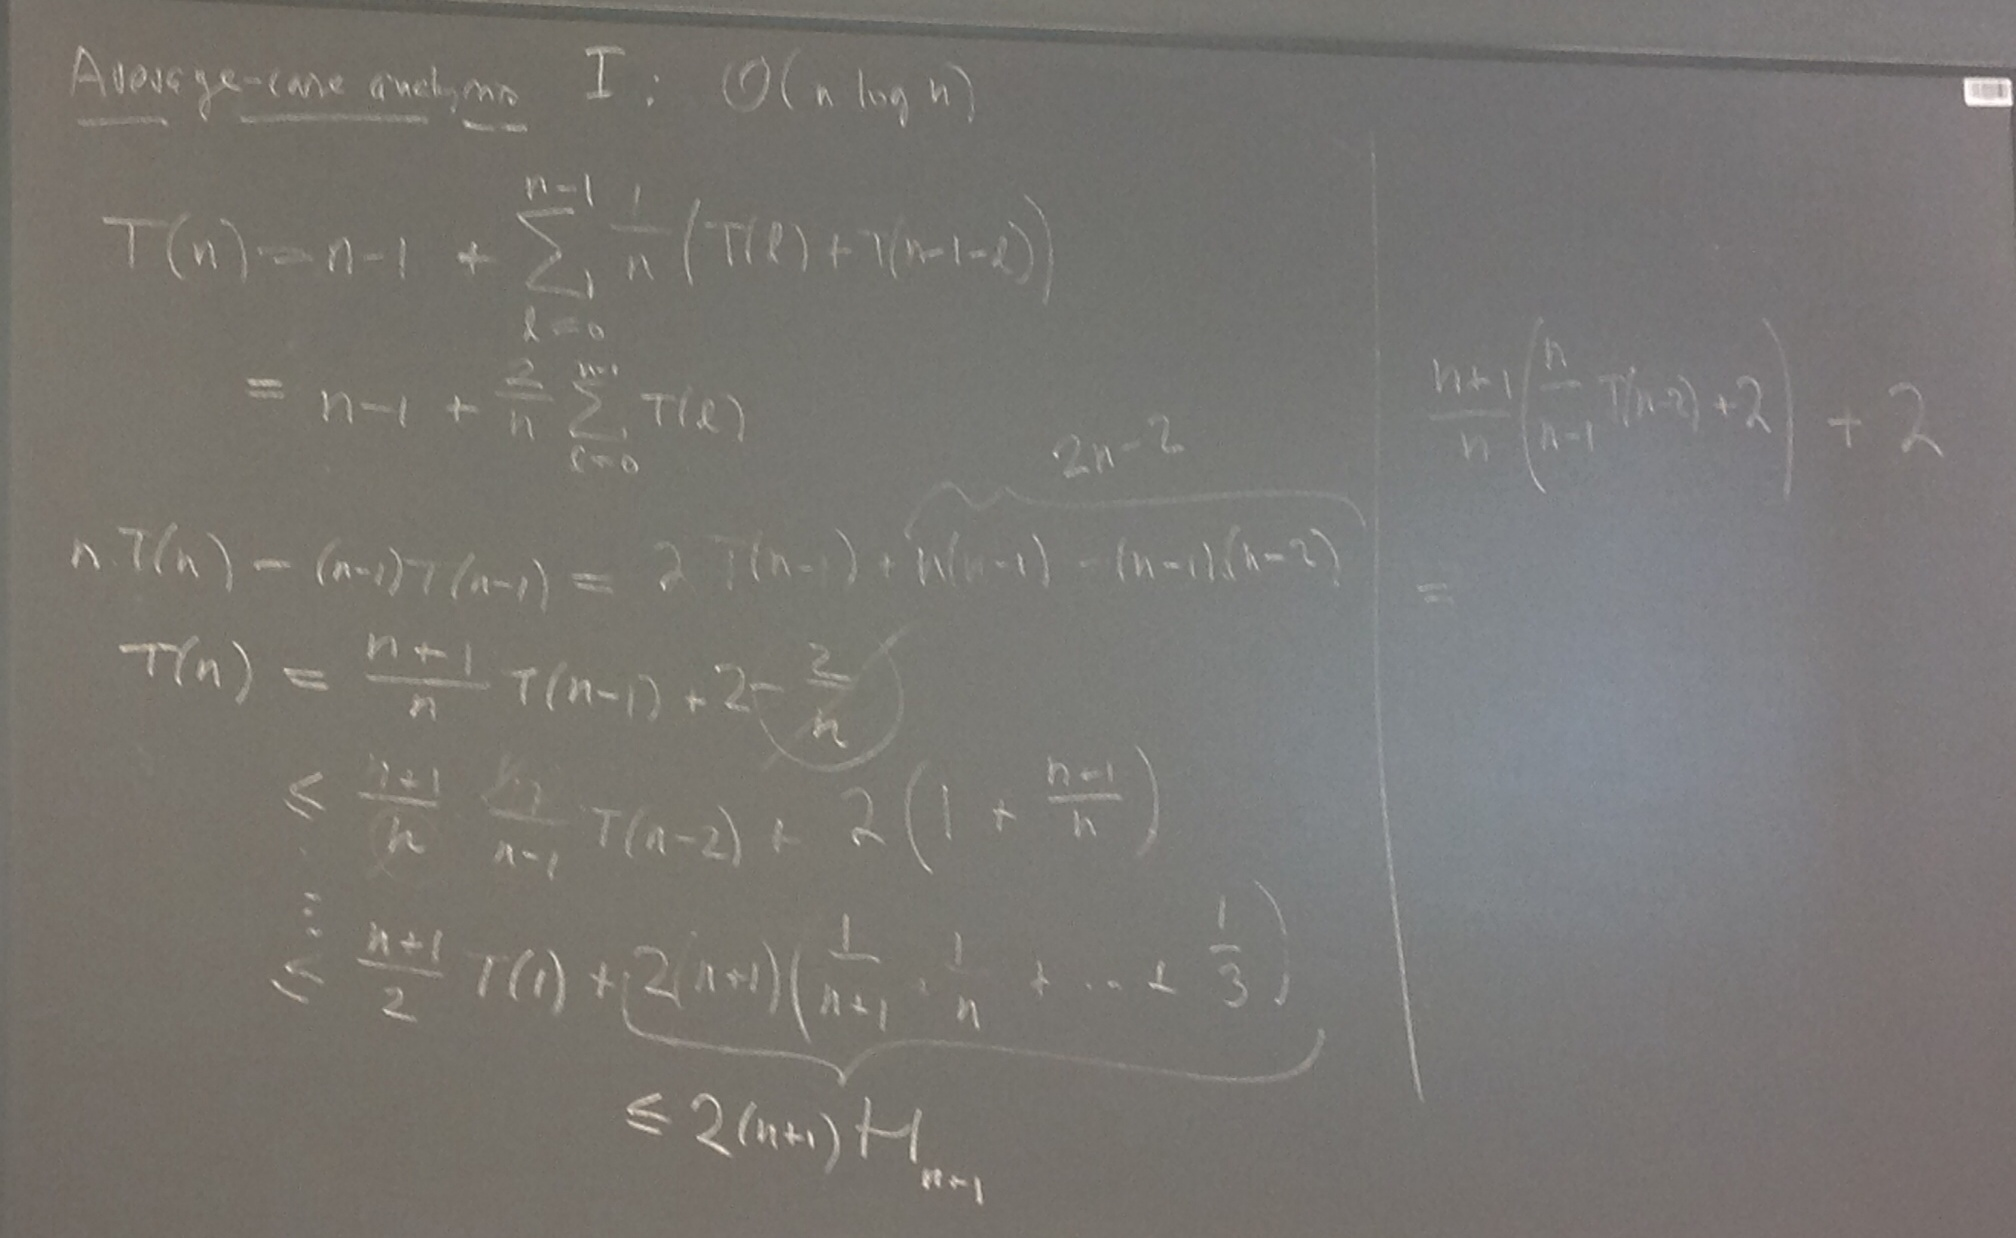 chapter 7 matrix multiplication slides from 224 chapter 7 eigenvalues and eigenvectors definition 711 let a be an n × n matrix a scalar λ is said to be a eigenvalue of a, if ax = λx for some vector x 6= 0.